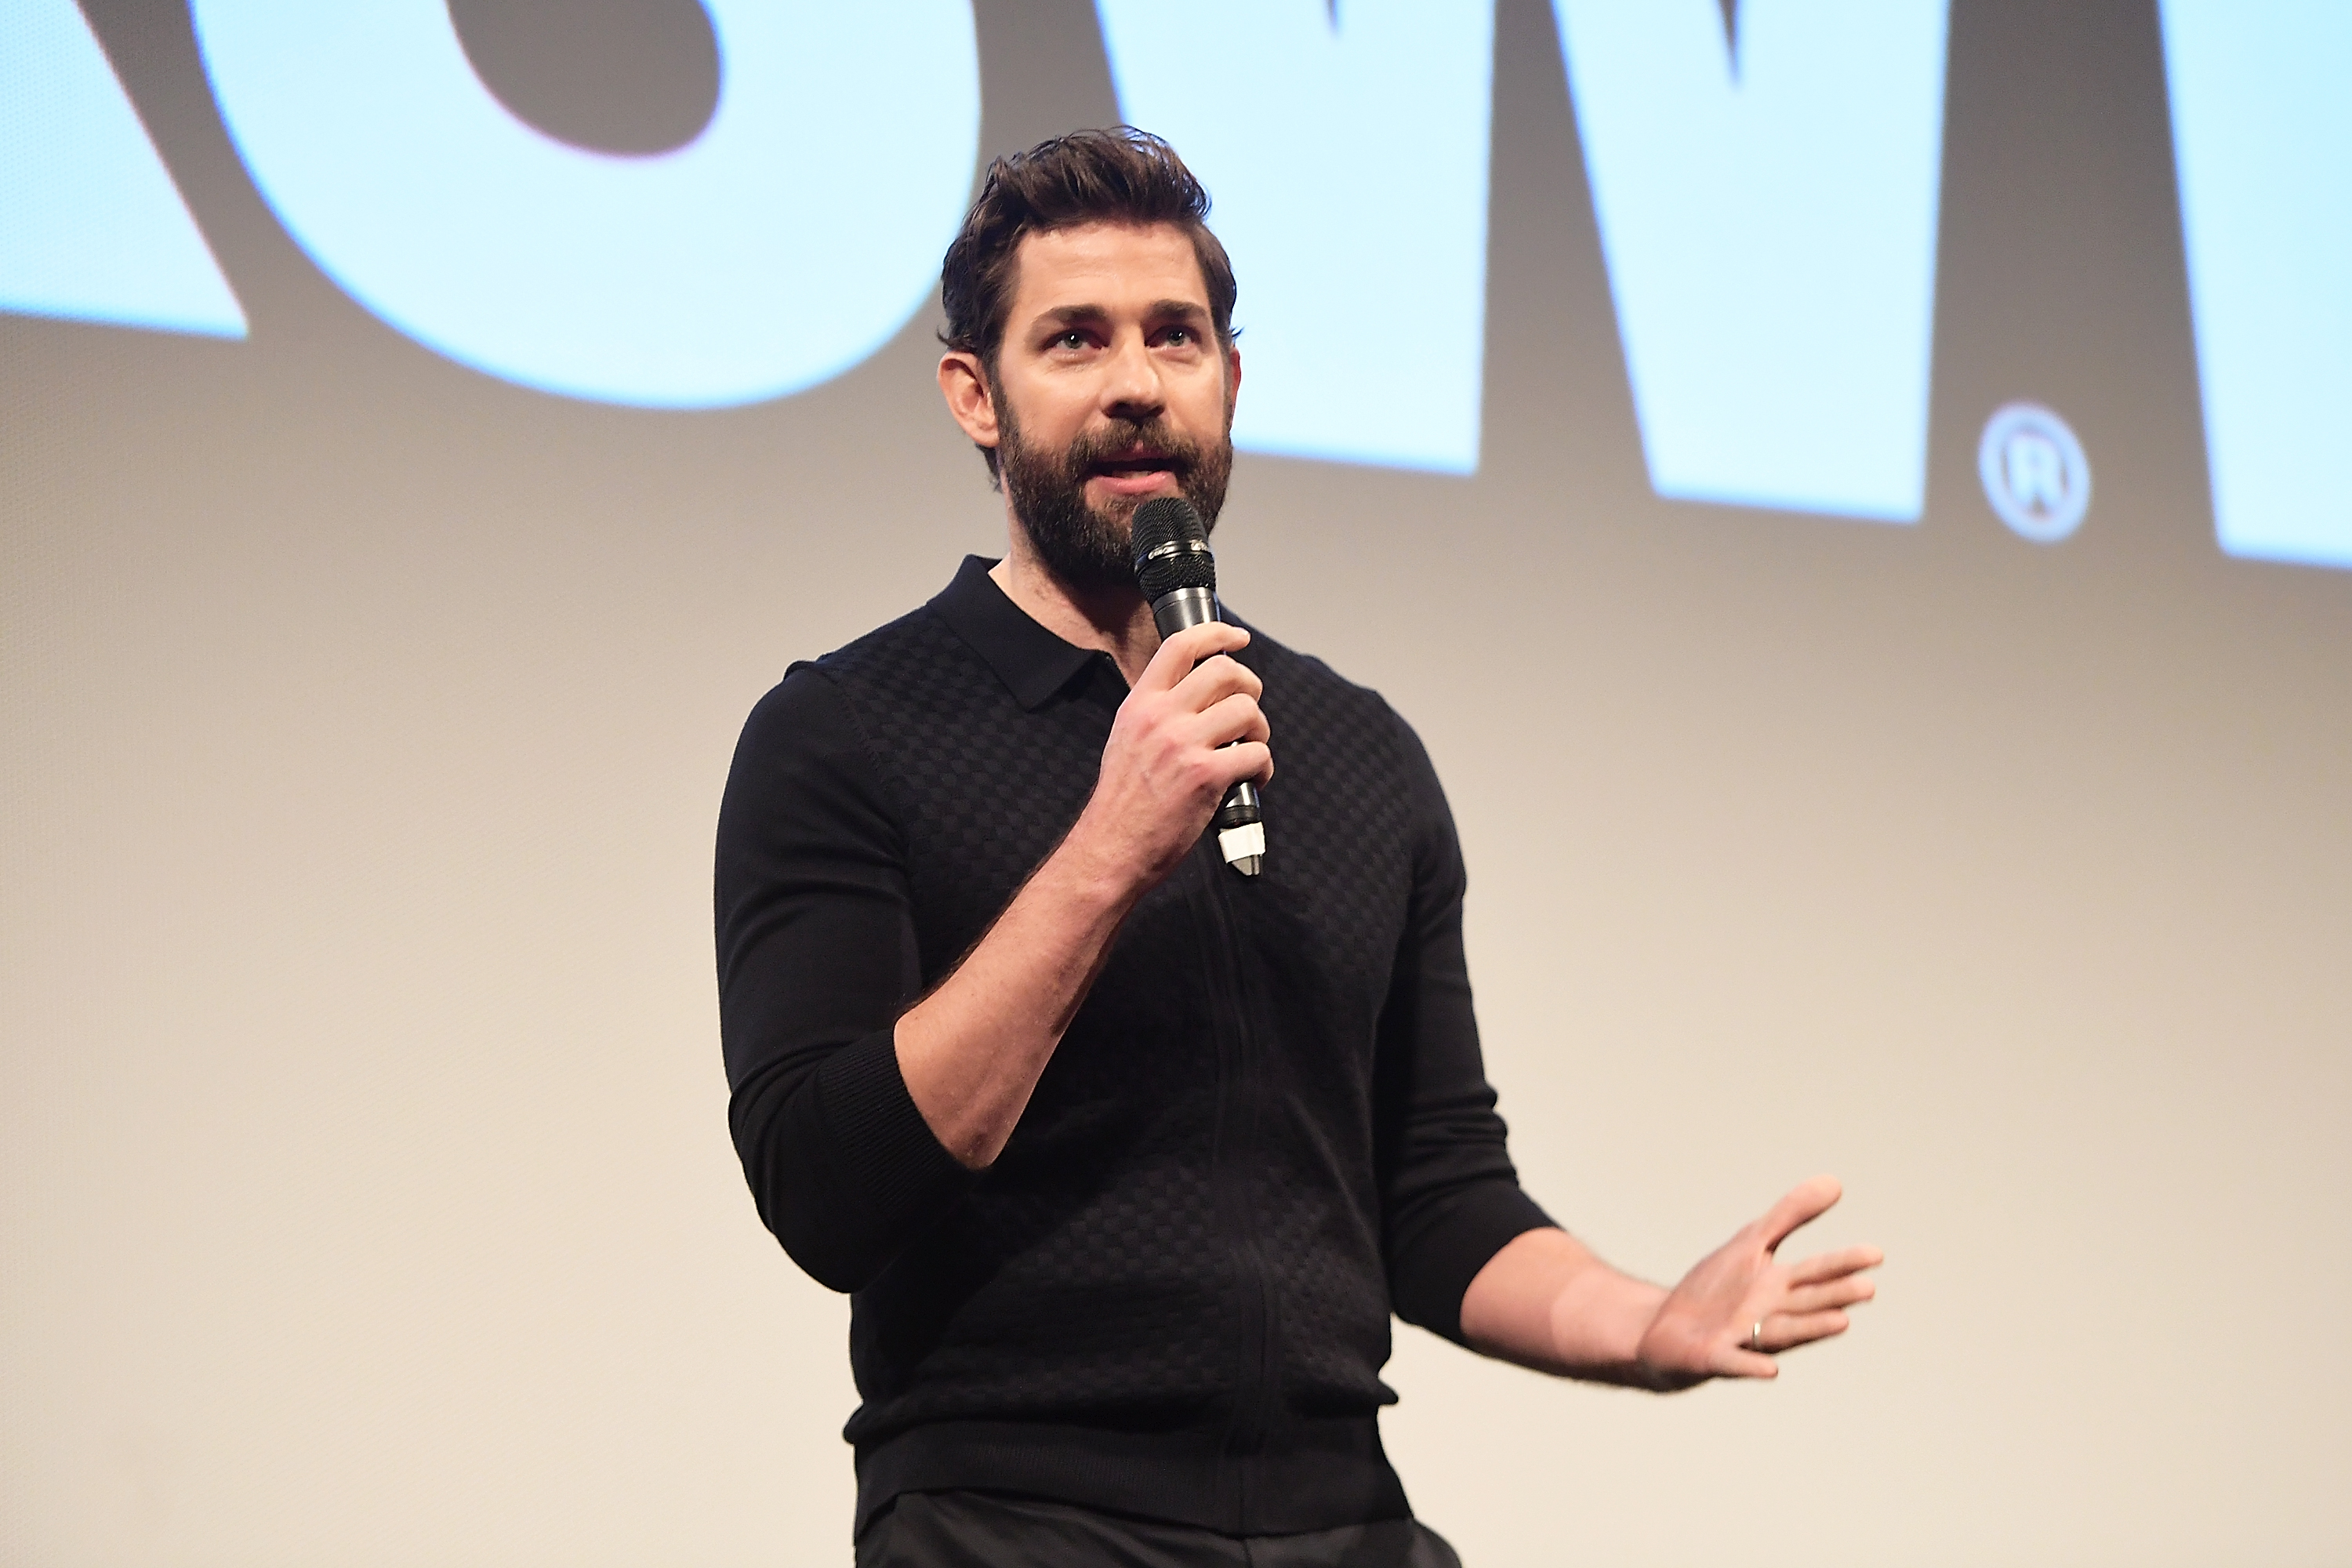 John Krasinski during the Q&A for A Quiet Place.